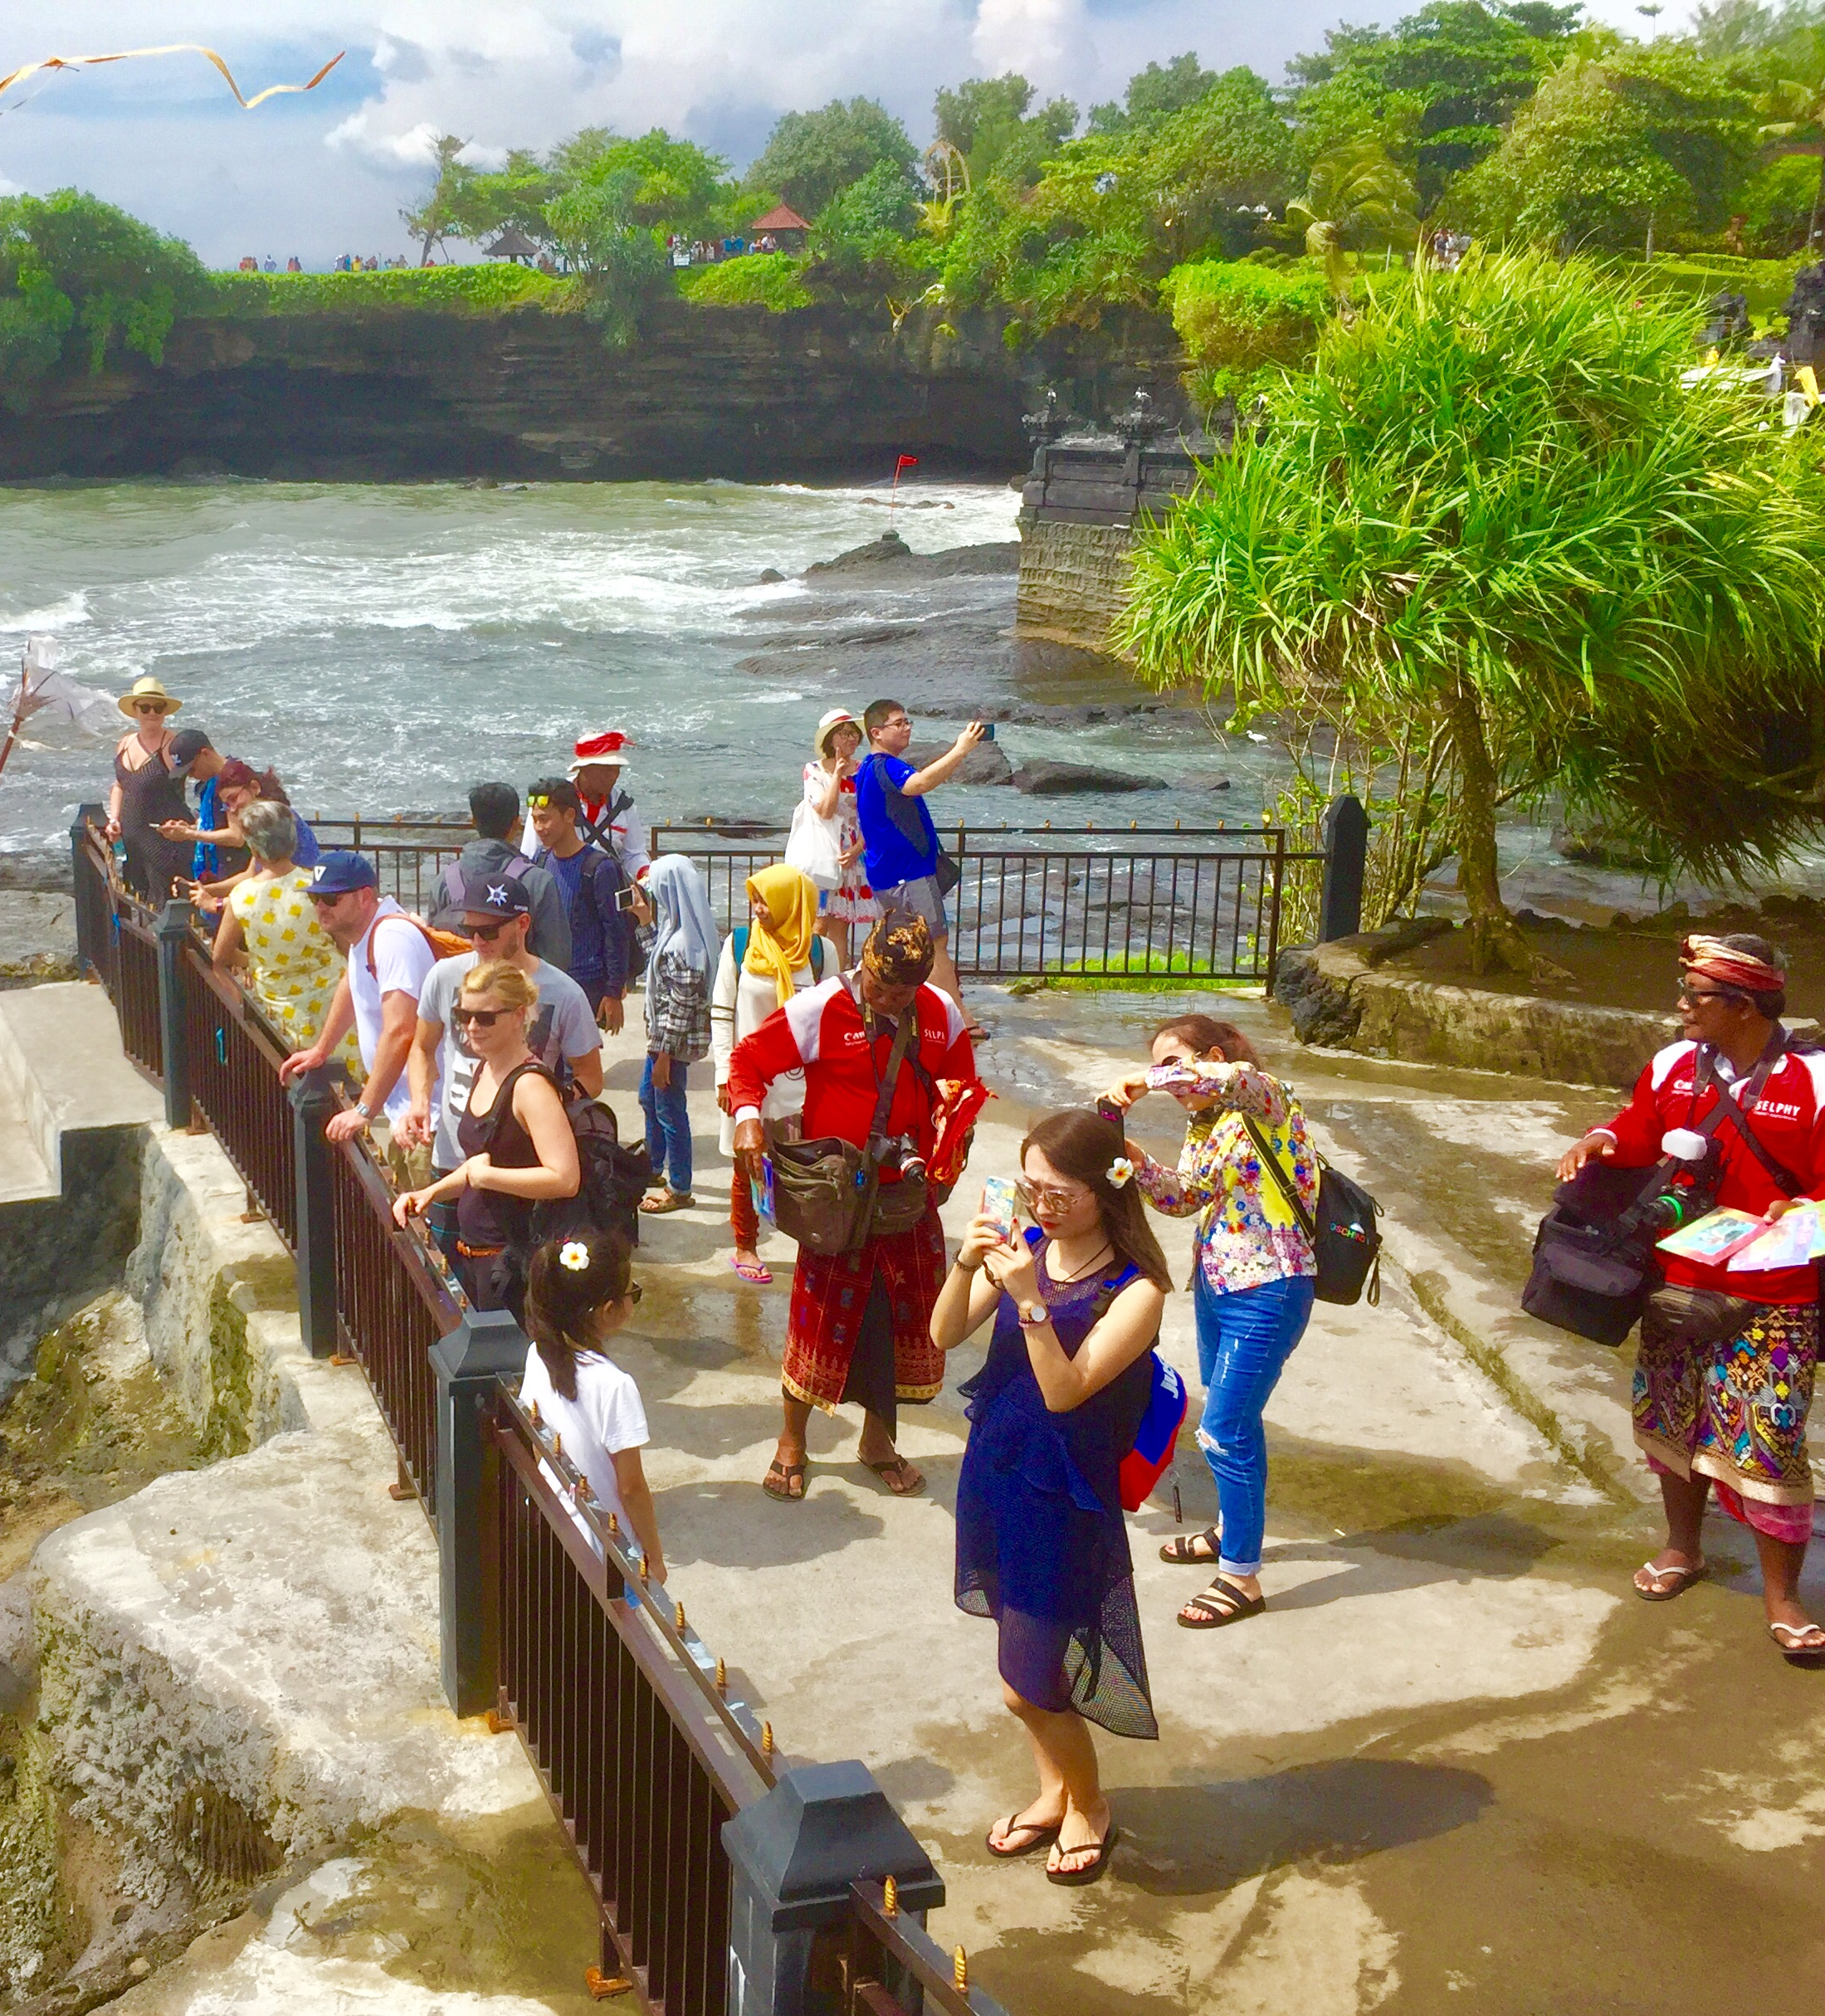 OUTBOUND TRAVEL FROM THAILAND BOOMING